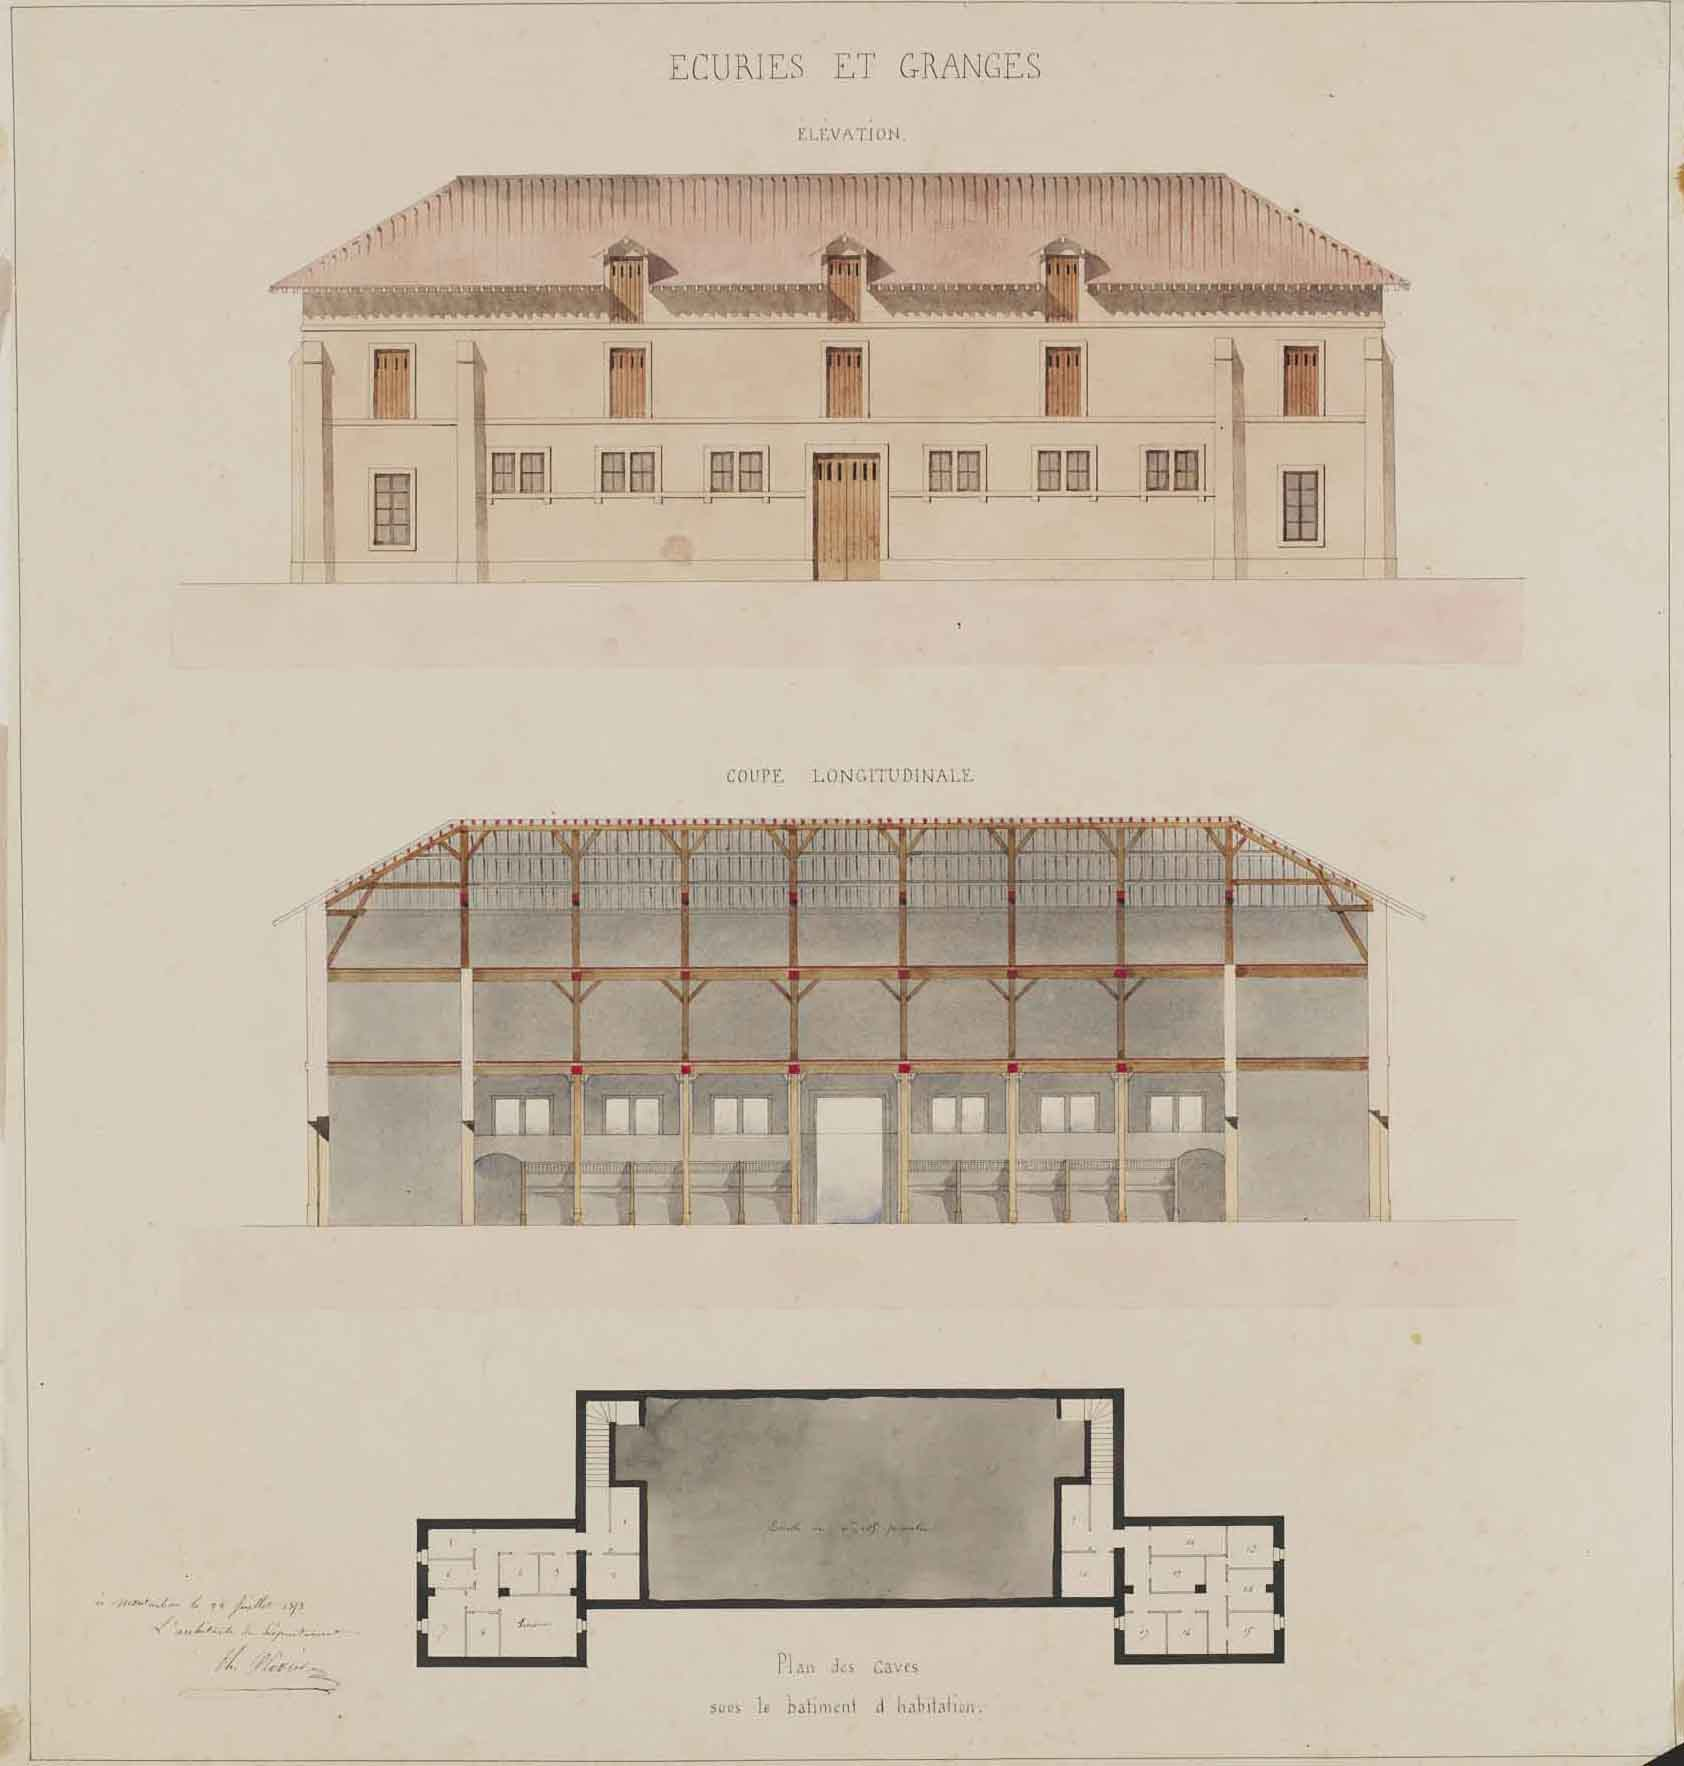 """Théodore Olivier (French, 1821-1899), Stables and Barns: elevation, cross-section and plan,  1853, pencil and watercolor on paper, 34 1/4 x 32 1/4"""" framed"""